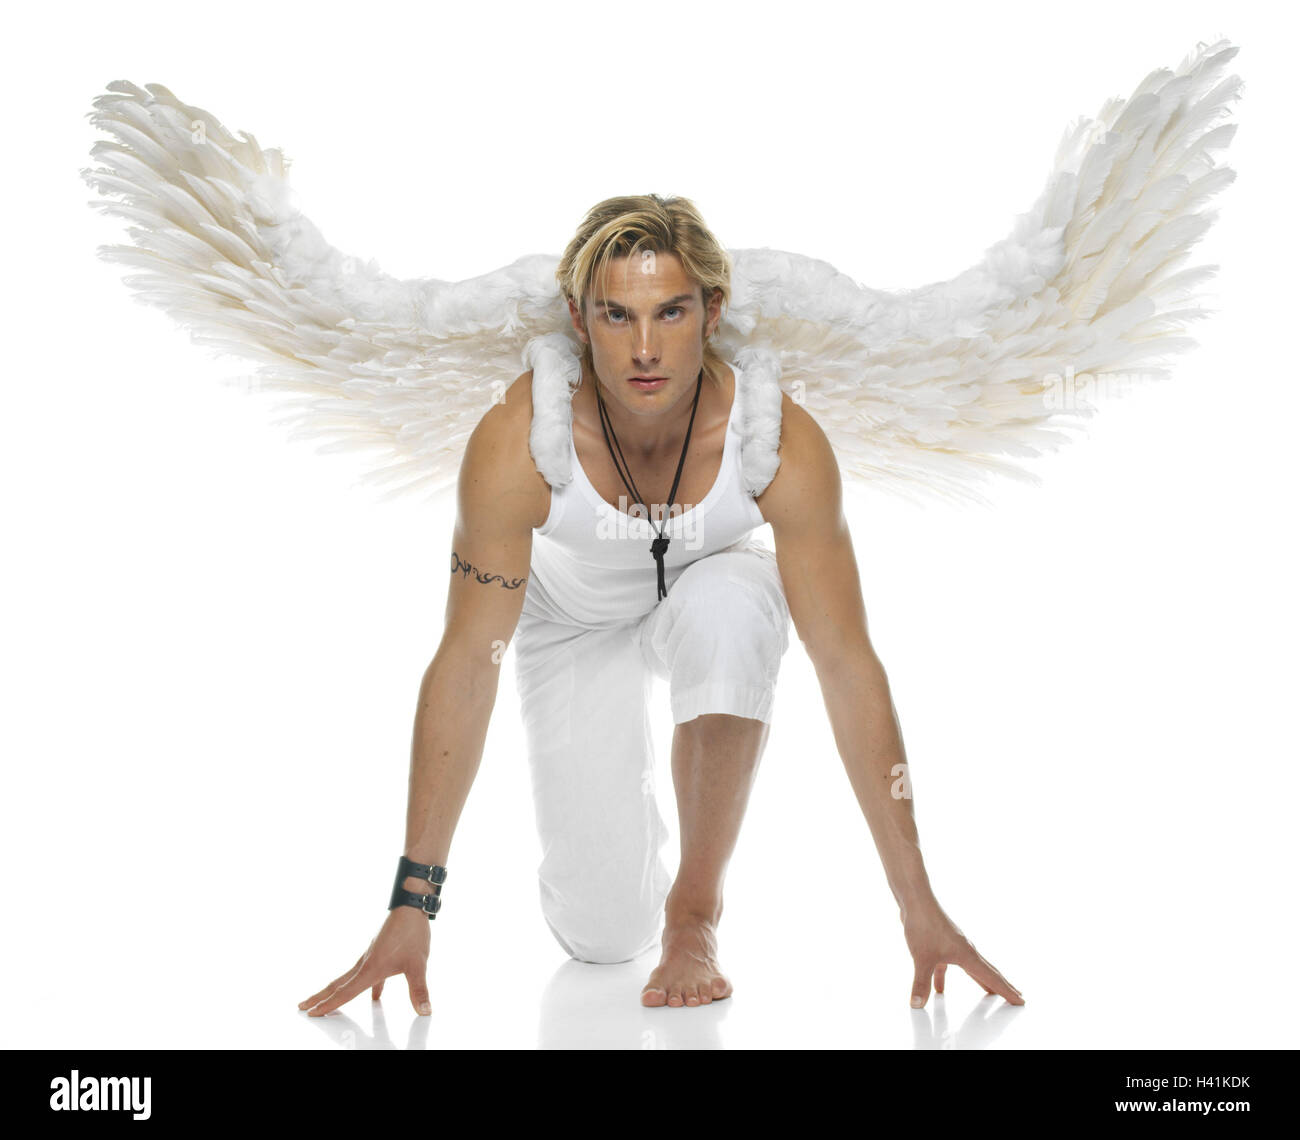 Man Young Blond Angel S Wings Squat 20 30 Years View Camera